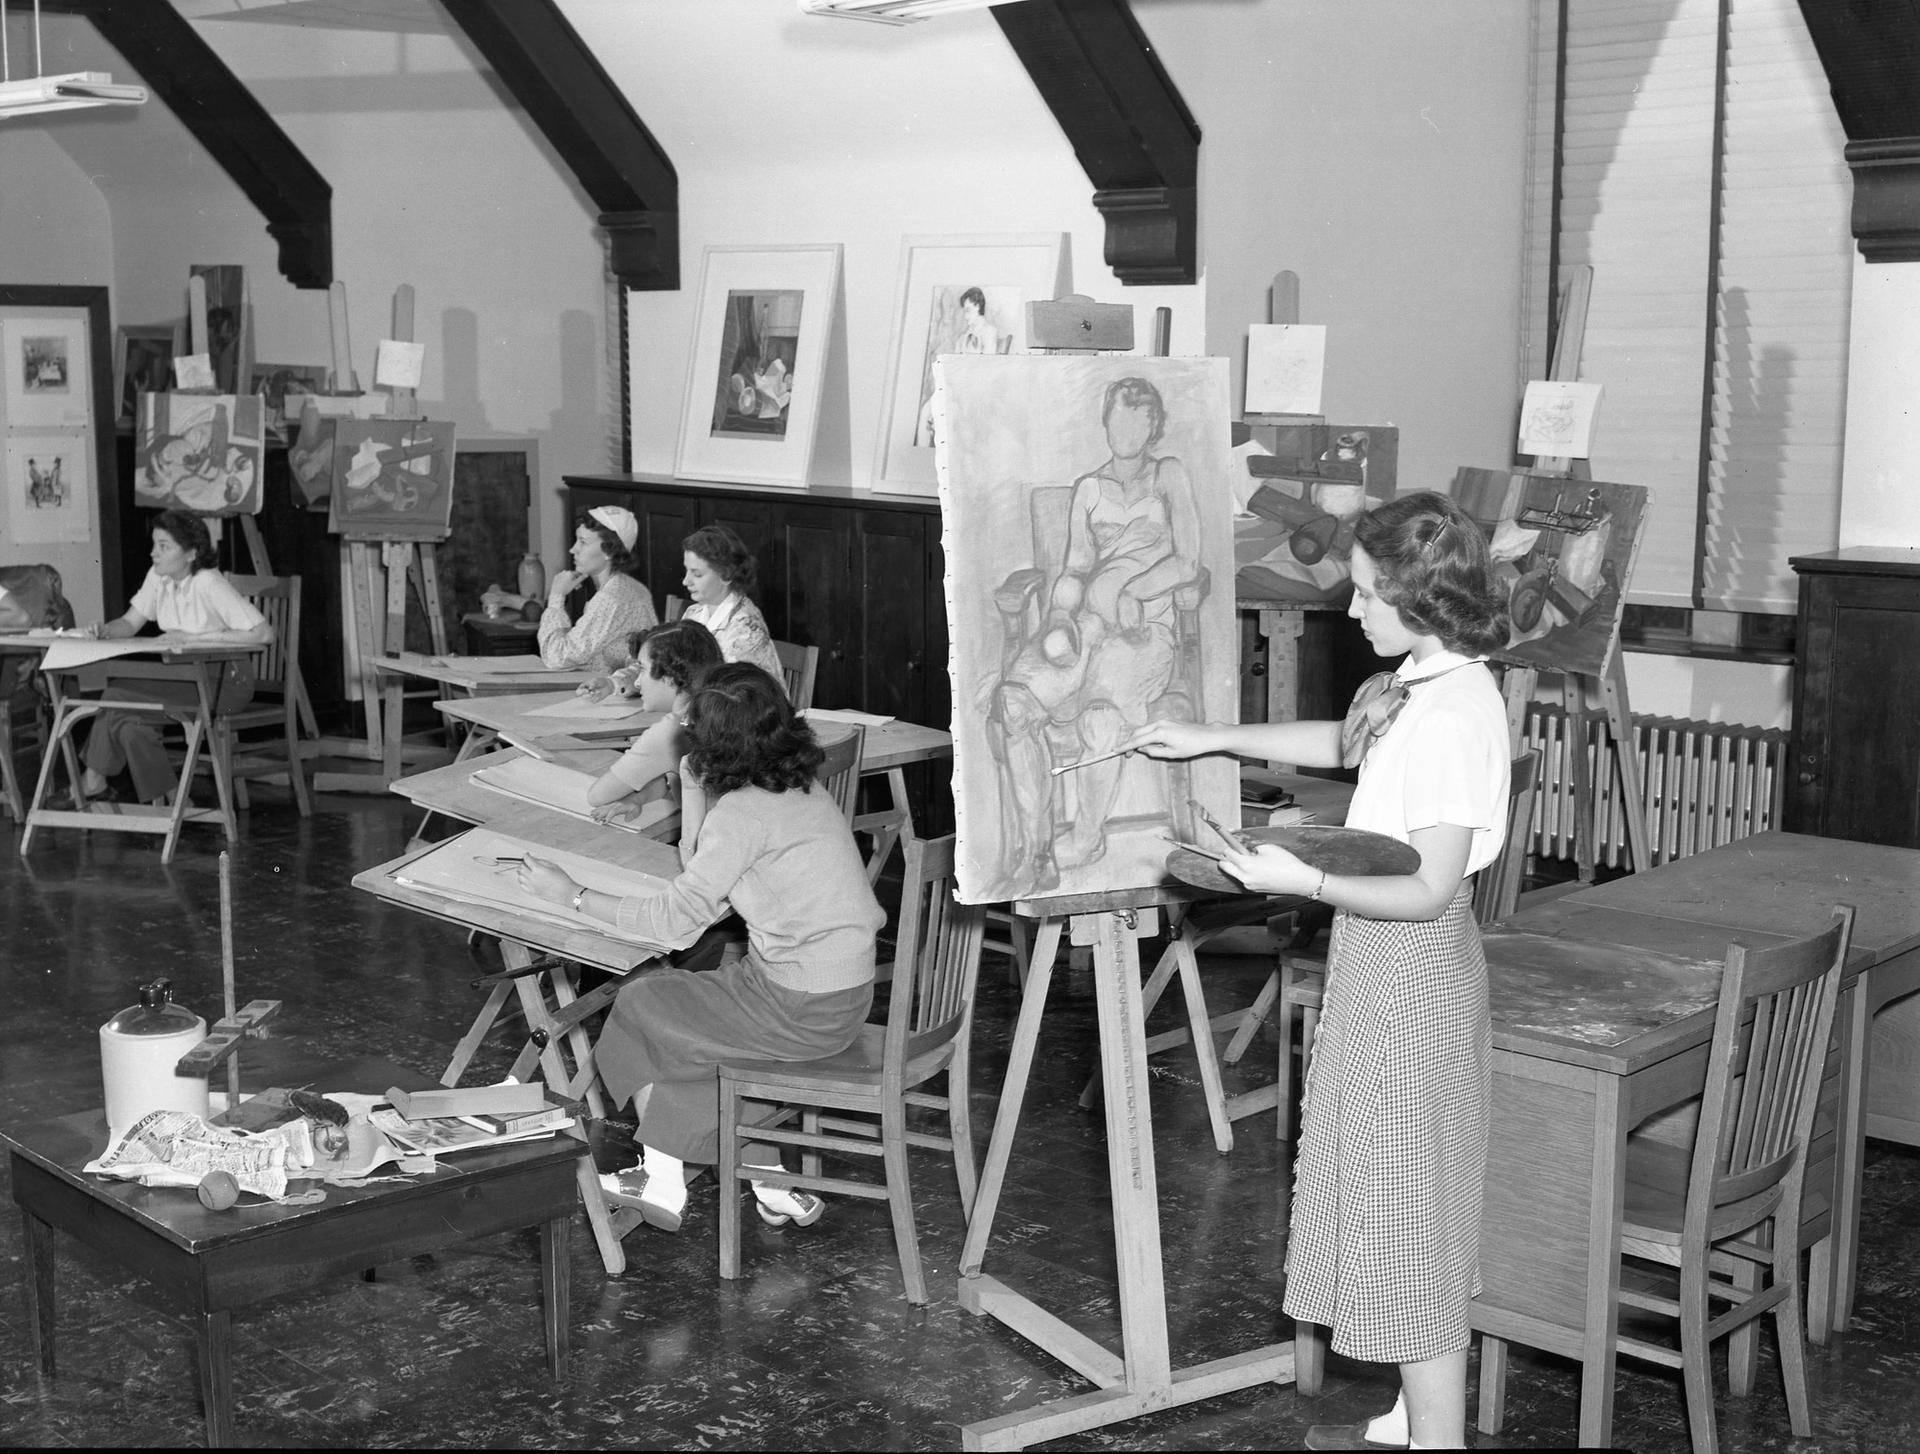 When it comes to art education, times have changed. Here's an art class from the Missouri State Archives taken around 1955 Photo: Gerald R. Massie